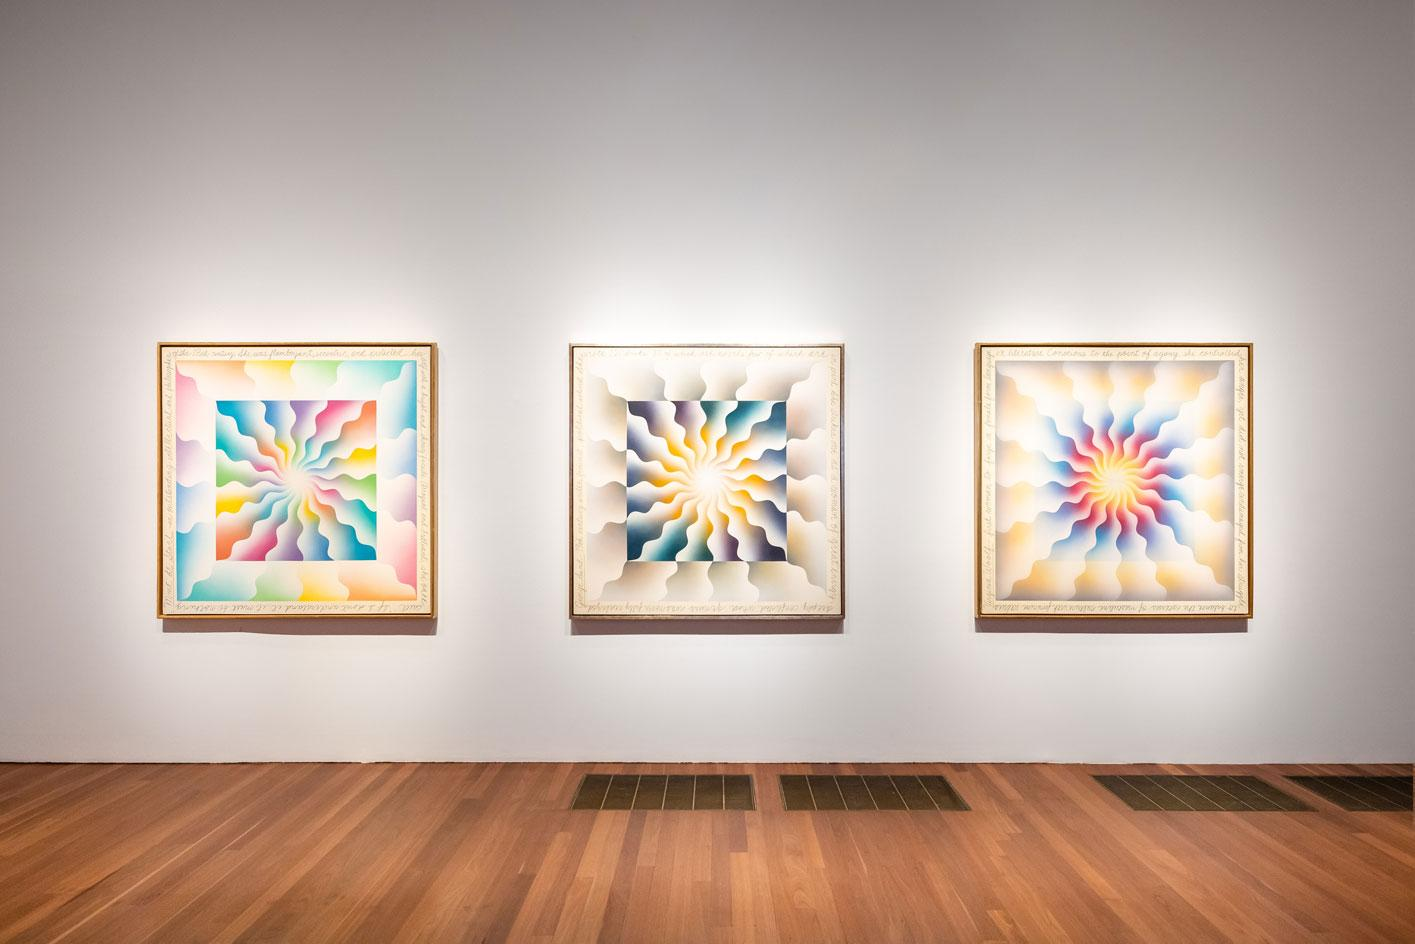 A Retrospective' at the de Young Museum.Photography by Gary Sexton.Image provided courtesy of the Fine Arts Museums of San Francisco